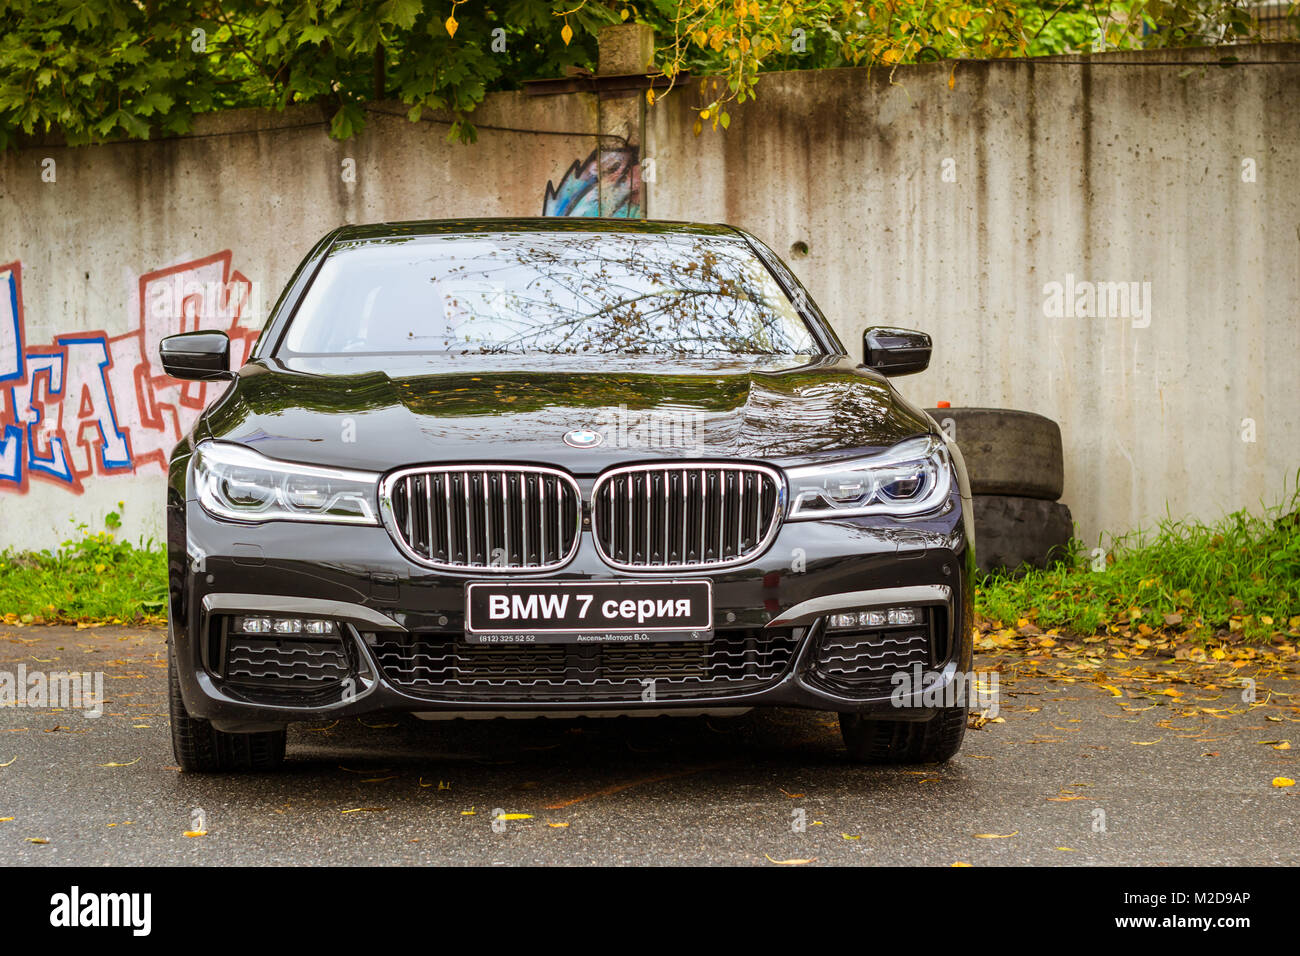 Saint Petersburg, Russia   September 16, 2017: Car BMW 7 Series